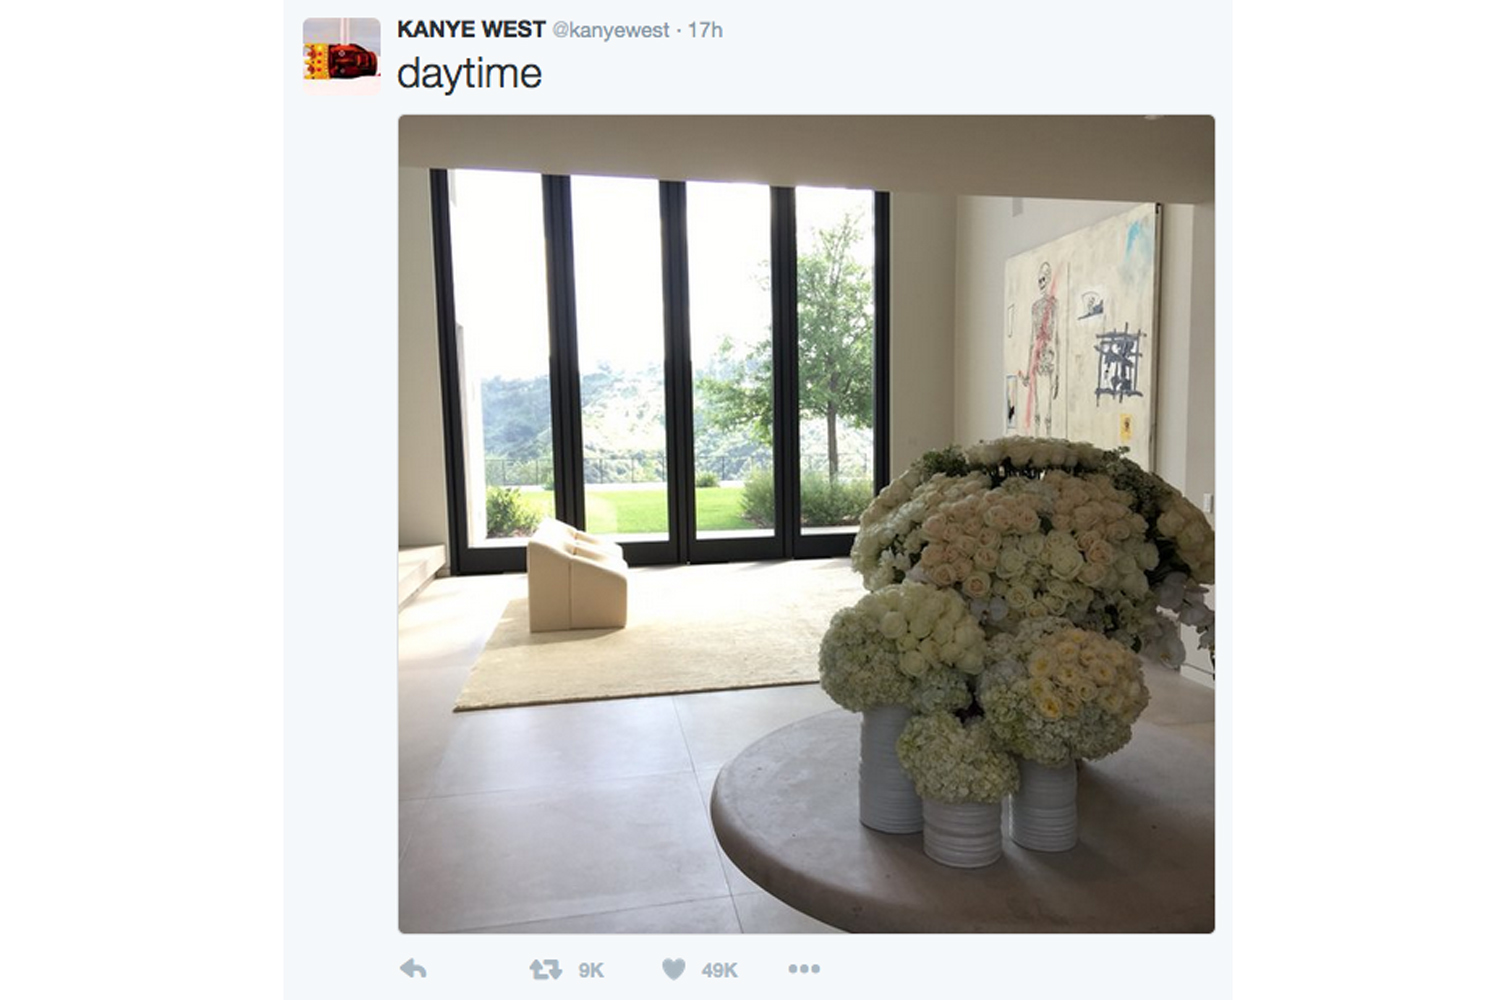 Kim Kardashian And Kanye West Have Moved In To Their New Home